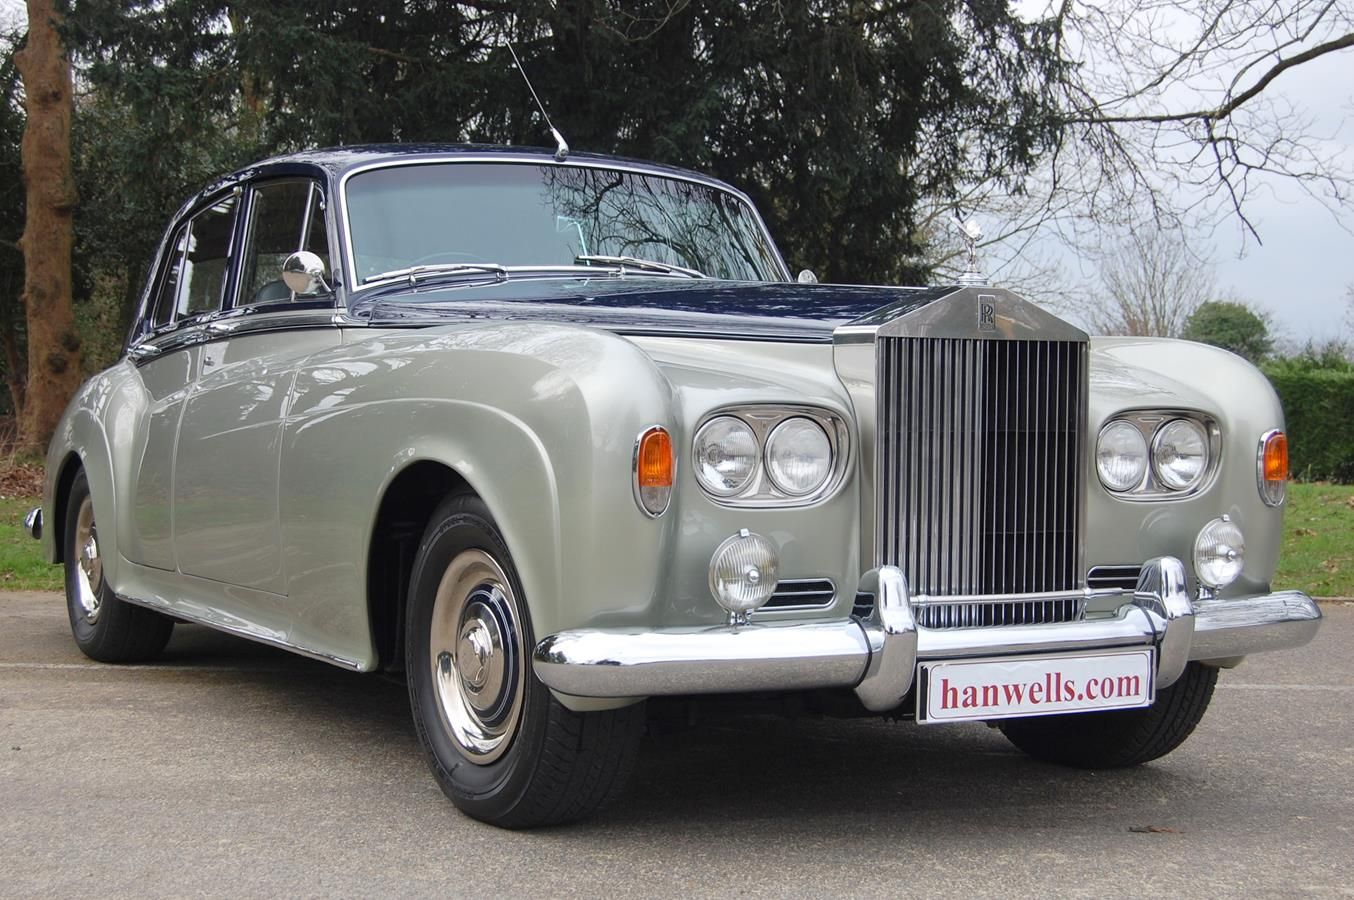 1964 Rolls Royce Silver Cloud Iii Finished In Blue Over Shell Grey